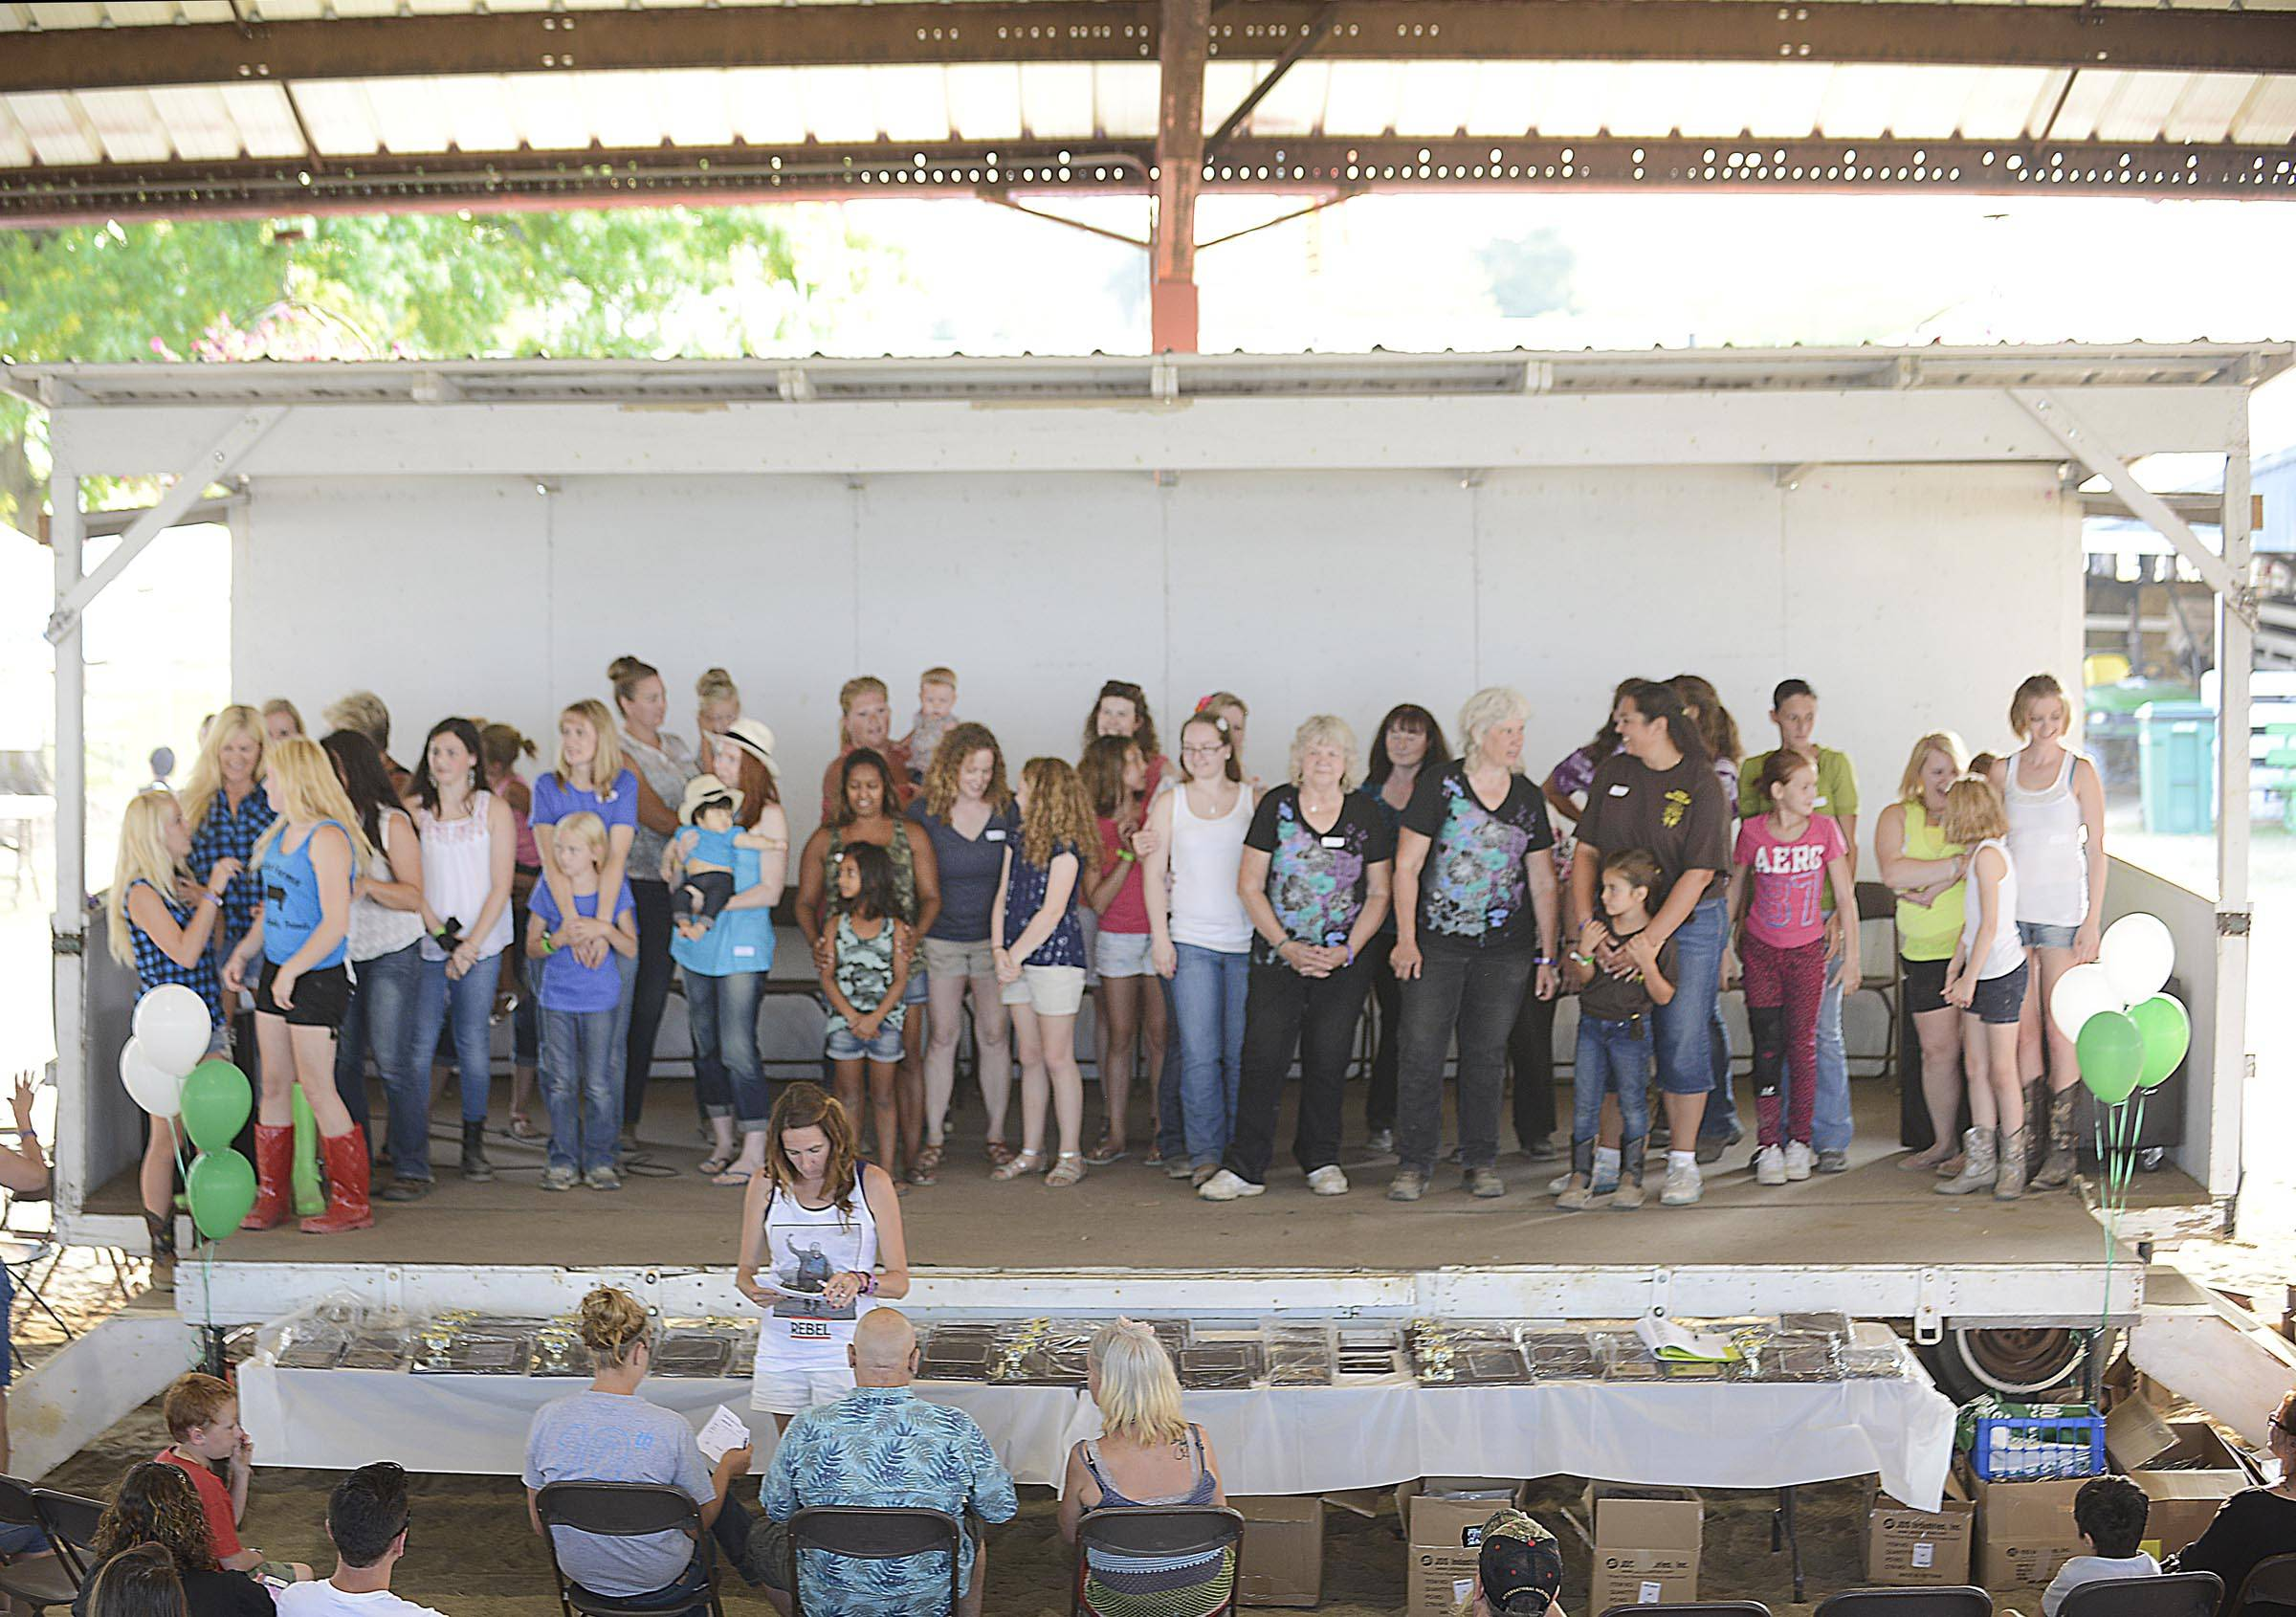 Twenty mothers and daughters competed in the Mother/Daughter Look-ALike contest in the Hansen Pavilion Thursday at the McHenry County Fair in Woodstock.